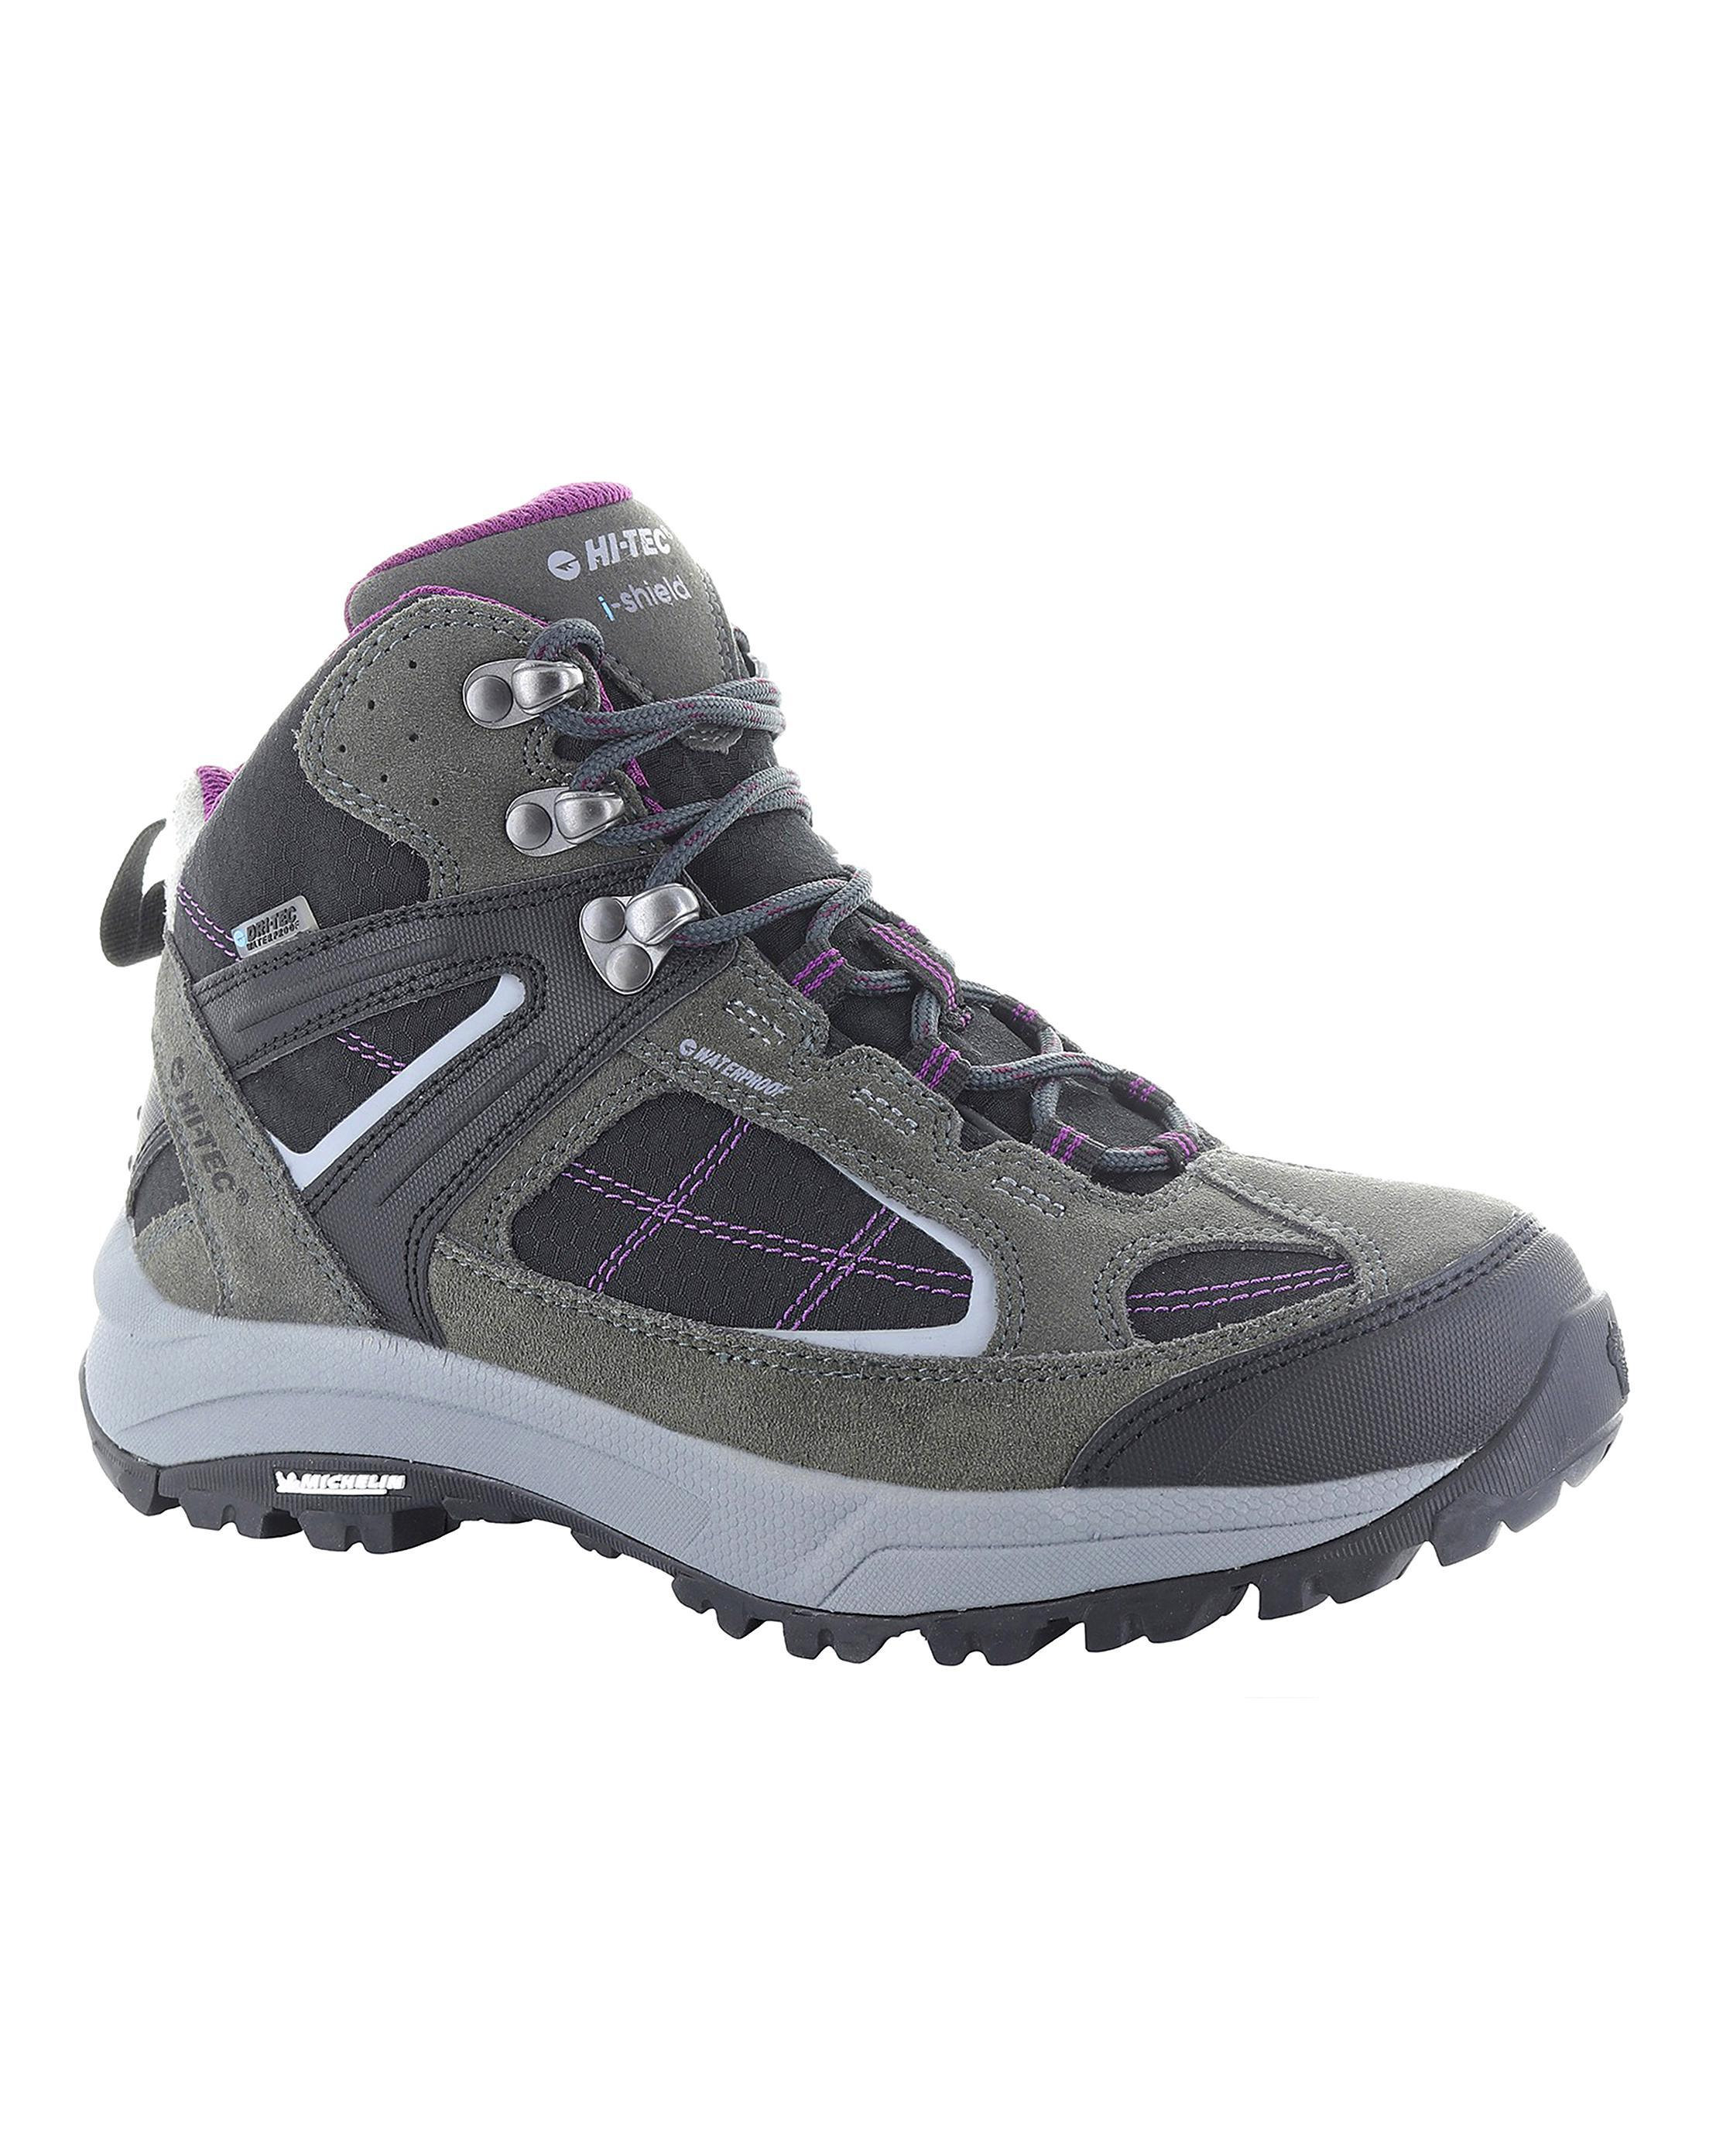 49ee28965d1 Lyst - Simply Be Hi Tec Altitude Vi-lite Mid Shoes in Gray